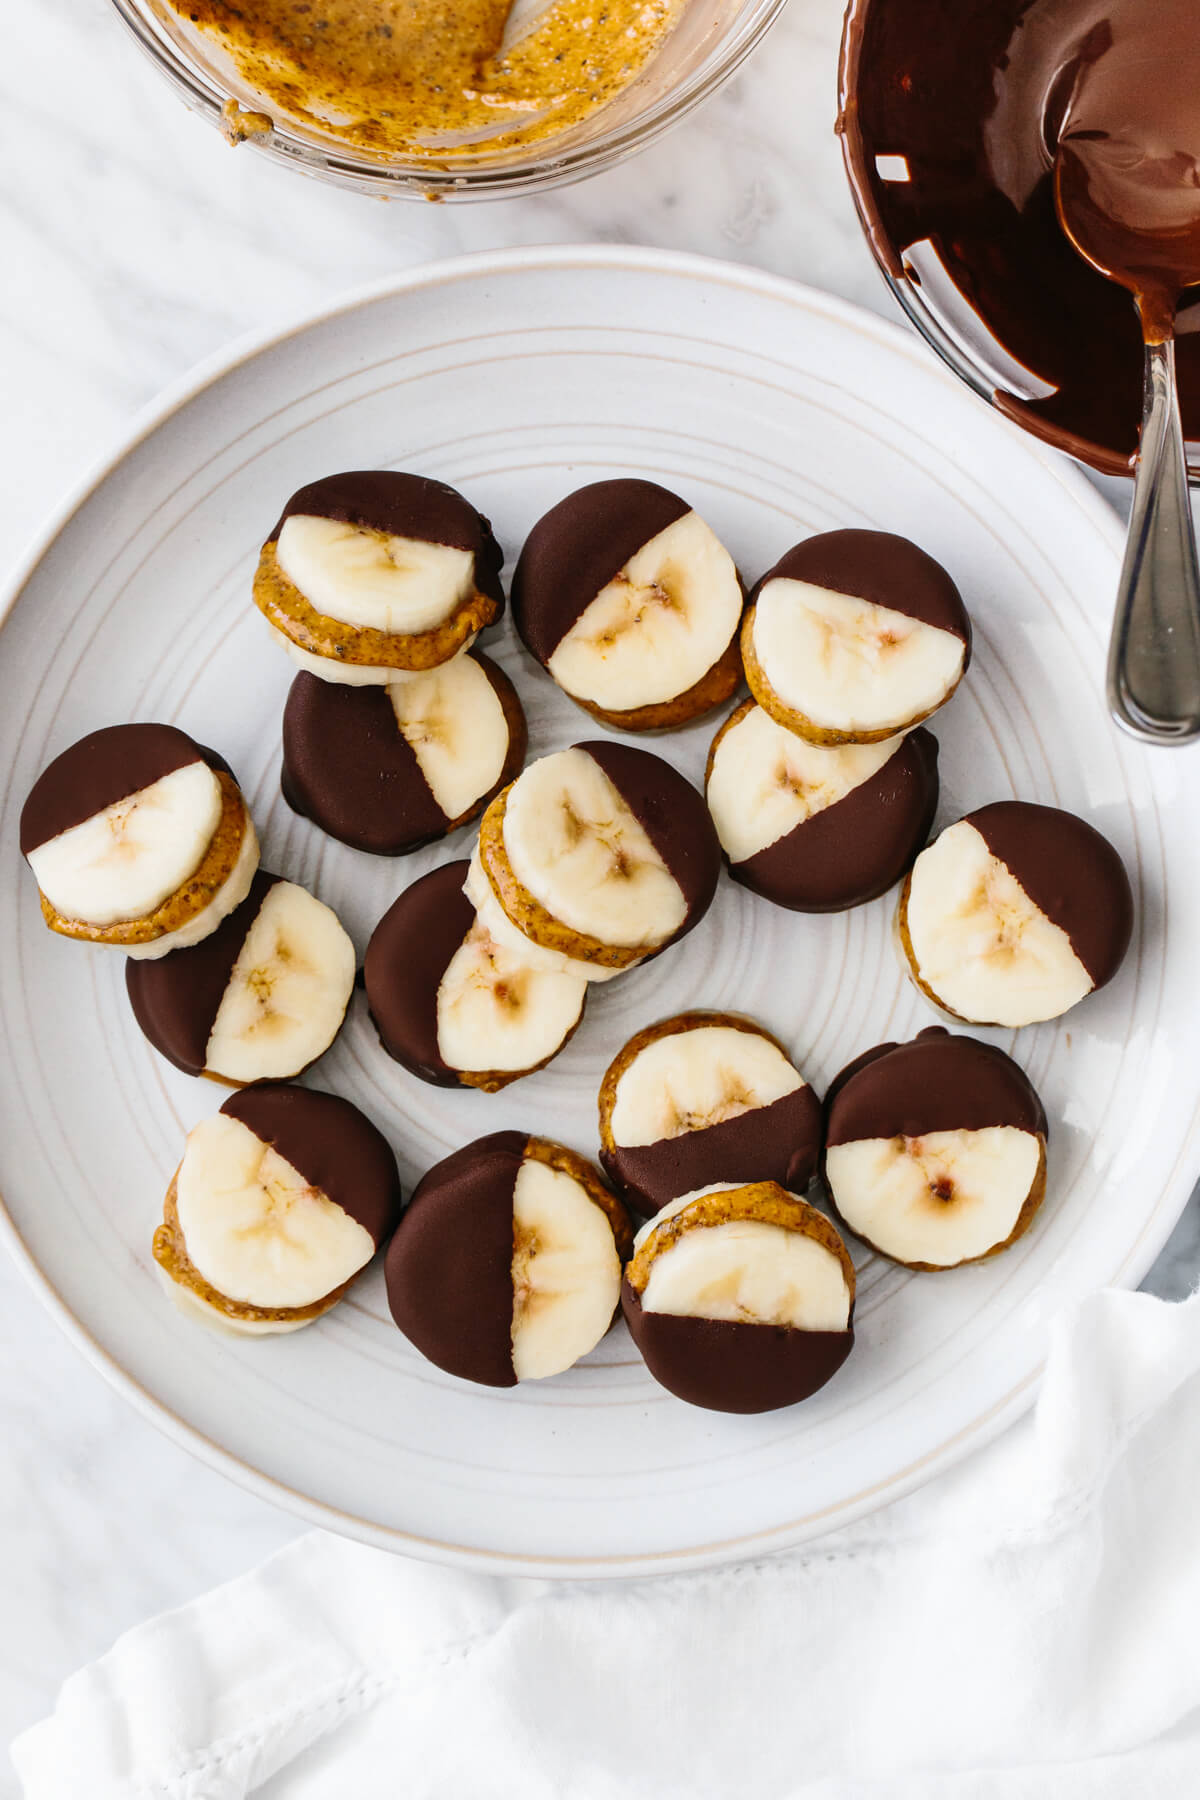 Frozen chocolate banana bites on a plate next to bowls of chocolate and almond butter.